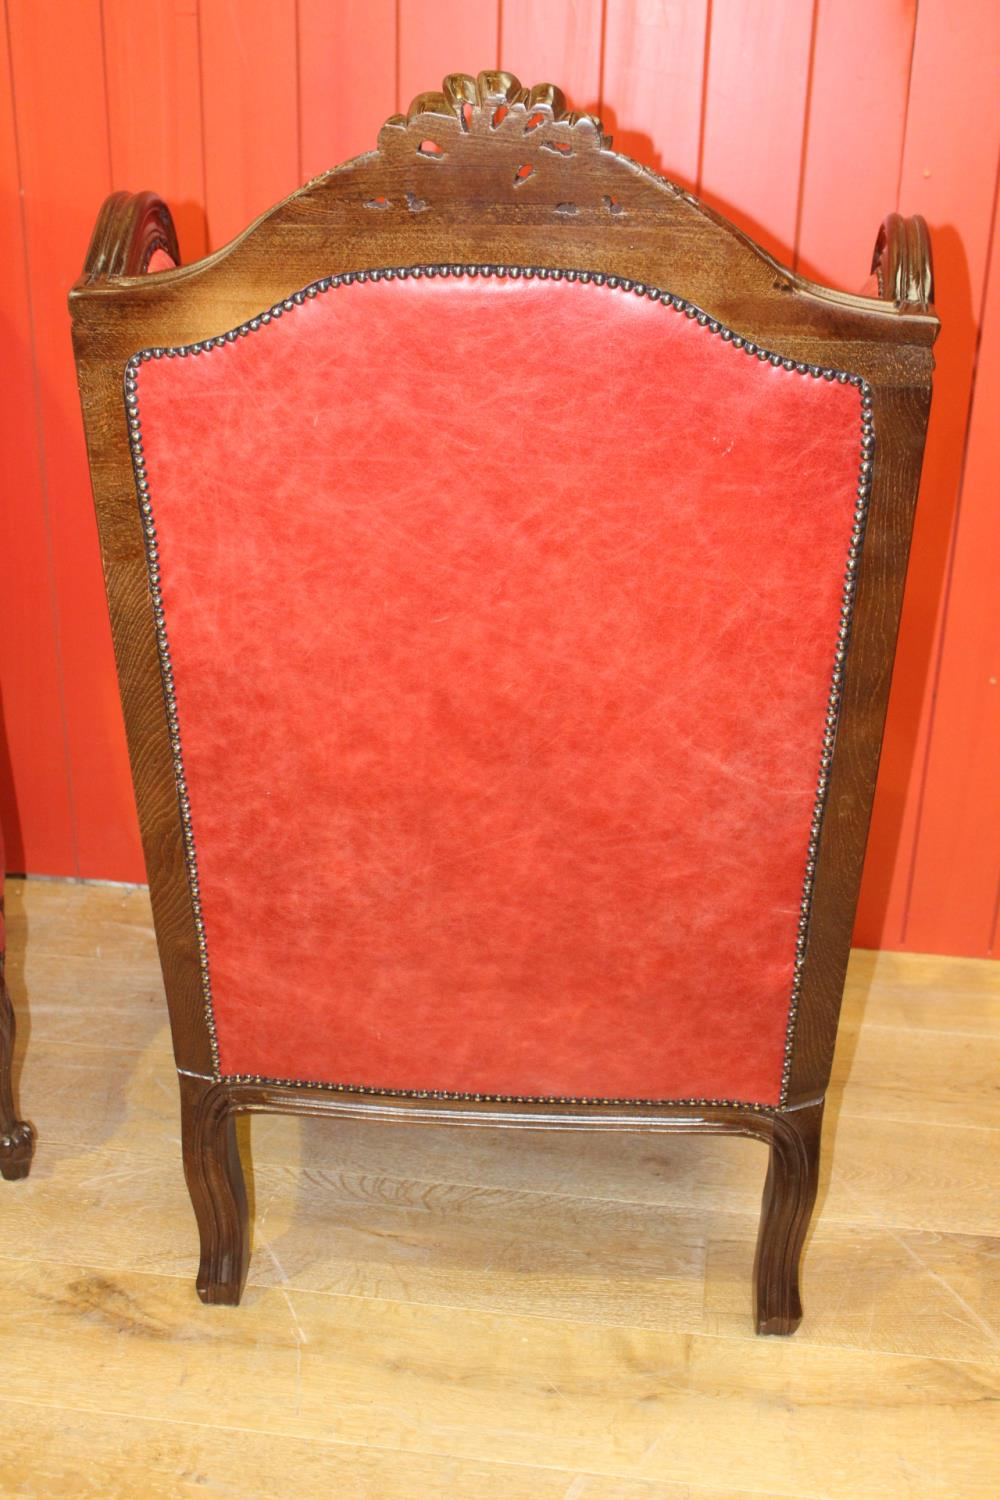 Pair of wing back leather upholstered armchairs - Image 2 of 2